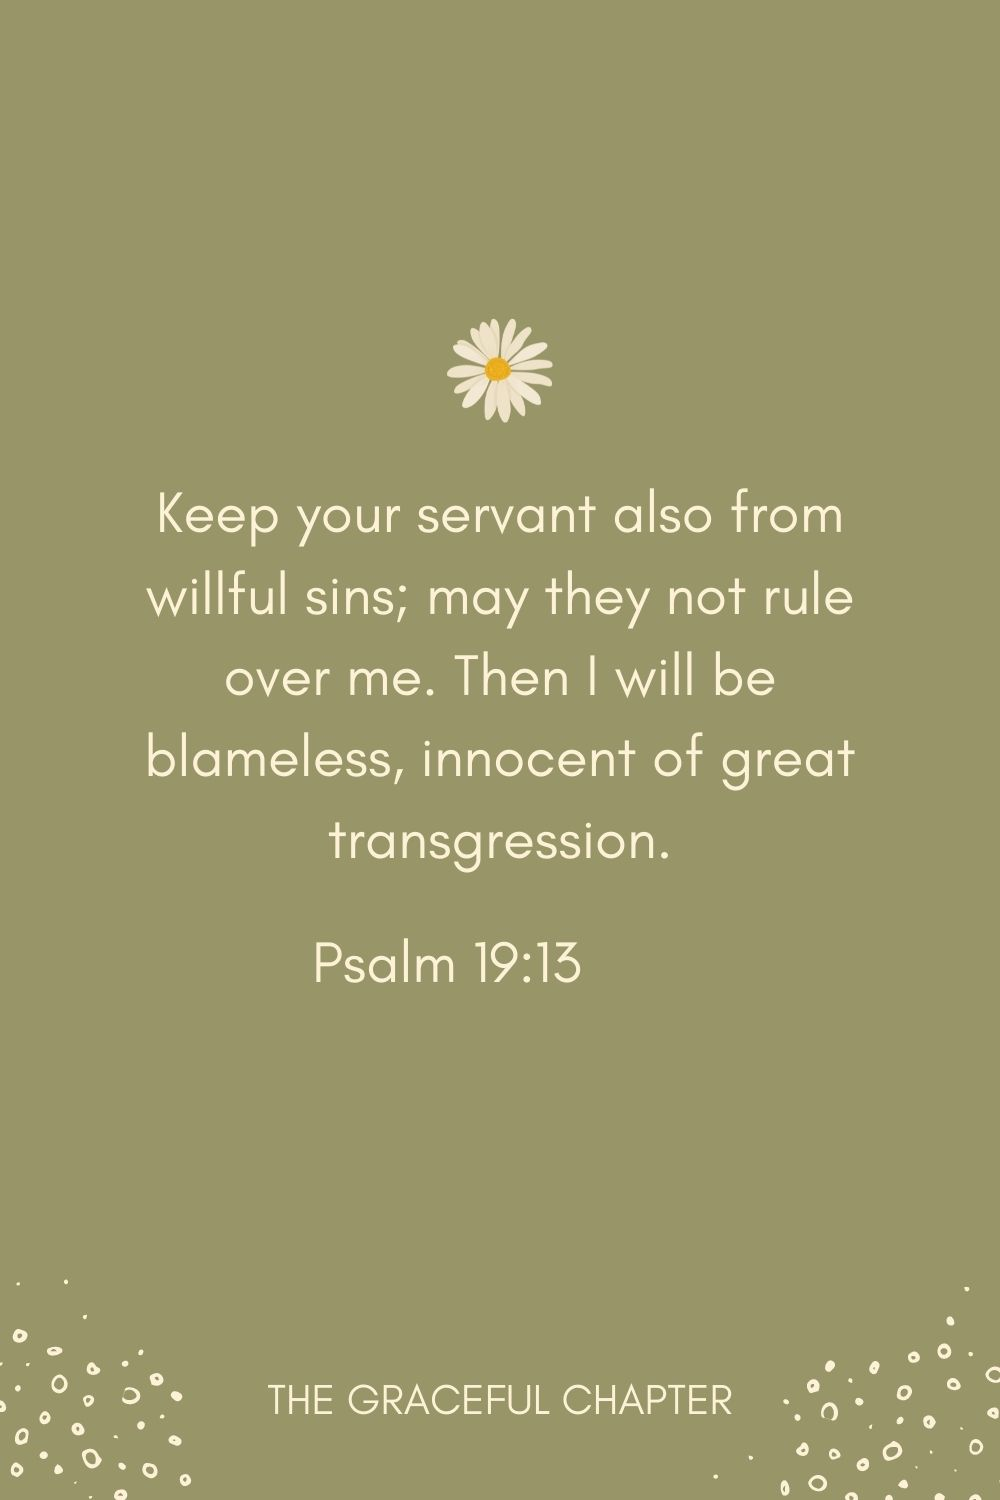 Keep your servant also from willful sins; may they not rule over me. Then I will be blameless, innocent of great transgression. Psalm 19:13